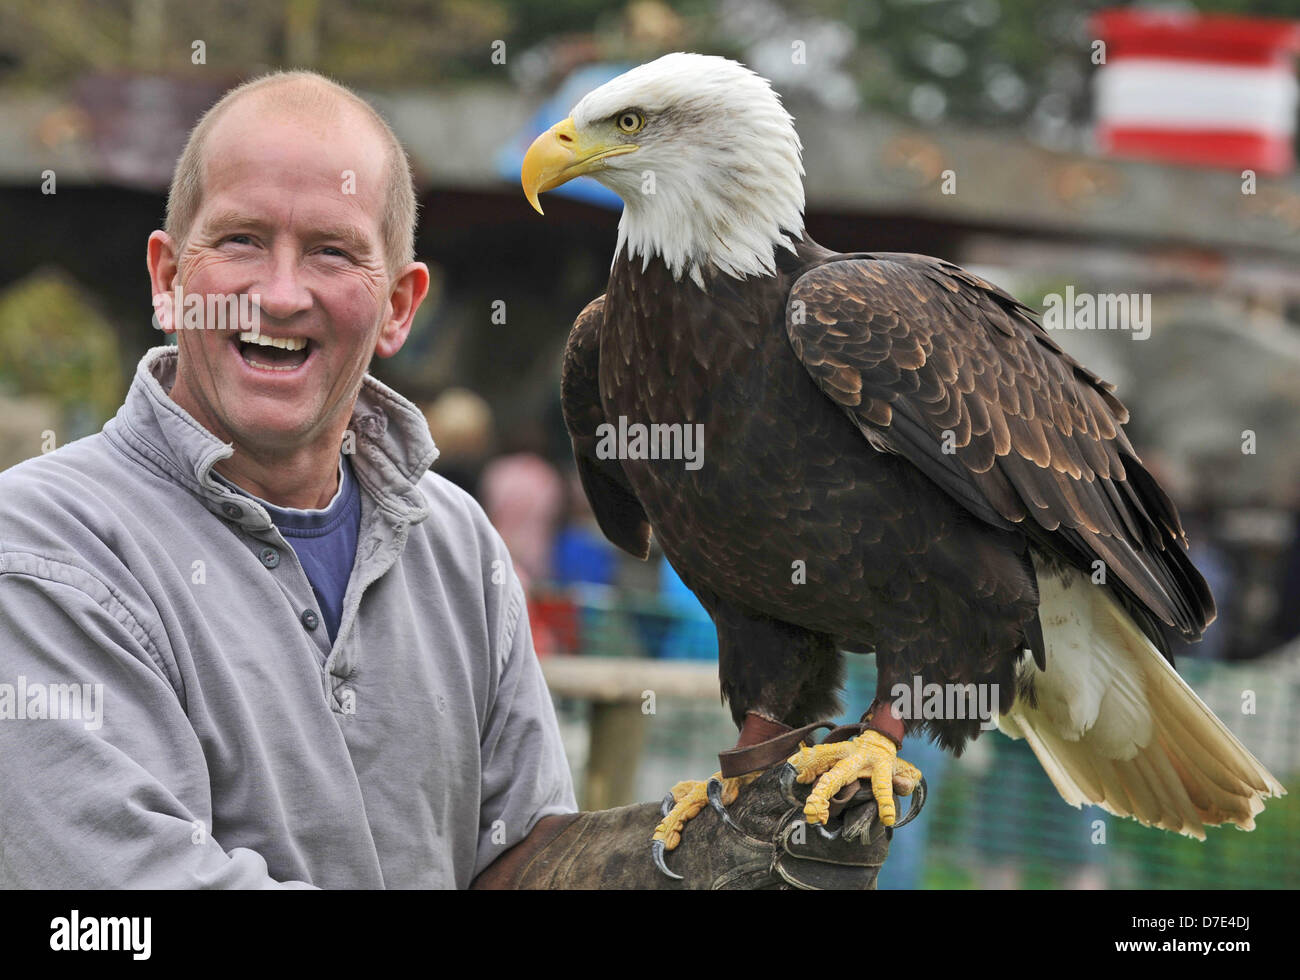 Weymouth, UK. 5th May, 2013. ITV Splash champÕ Eddie the Eagle Edwards faced a challenge every bit as daunting - Stock Image